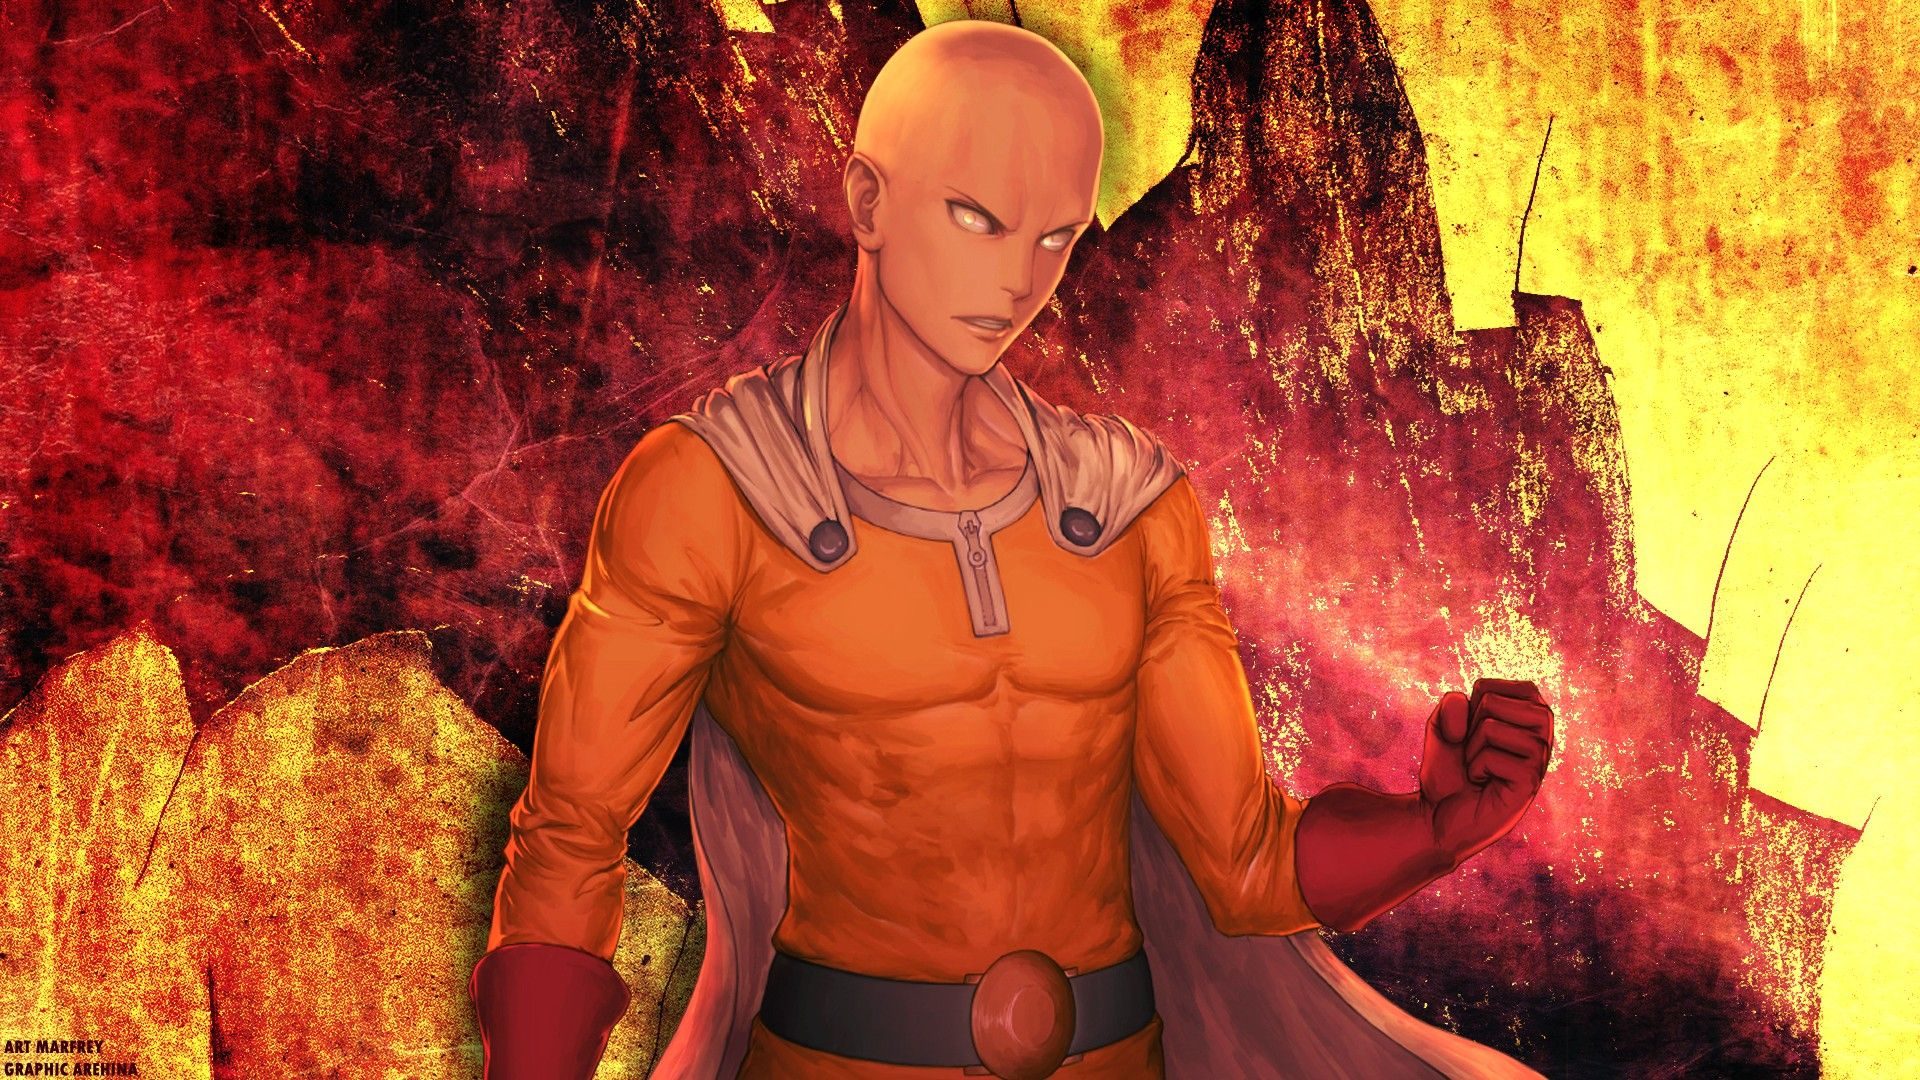 One Punch Man 4k Wallpaper Android One Punch Man Wallpaper 1920x1080 Download Free Stunning 1080x2160 One Punch In 2020 One Punch Man Saitama One Punch Man One Punch